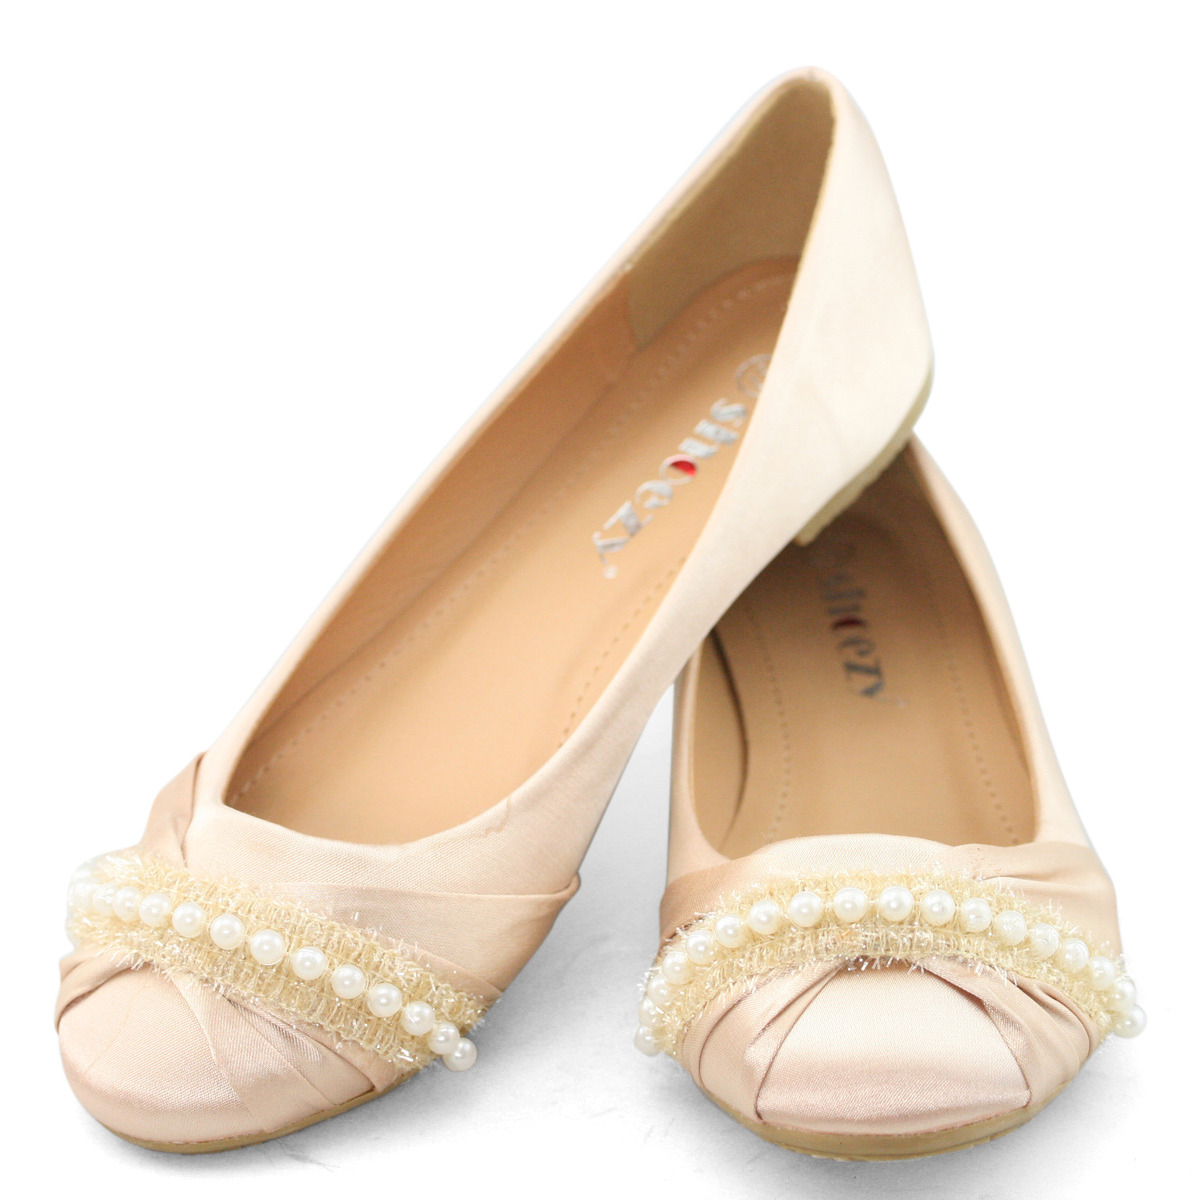 Details about womens white wedding shoes bridal satin flat round toe